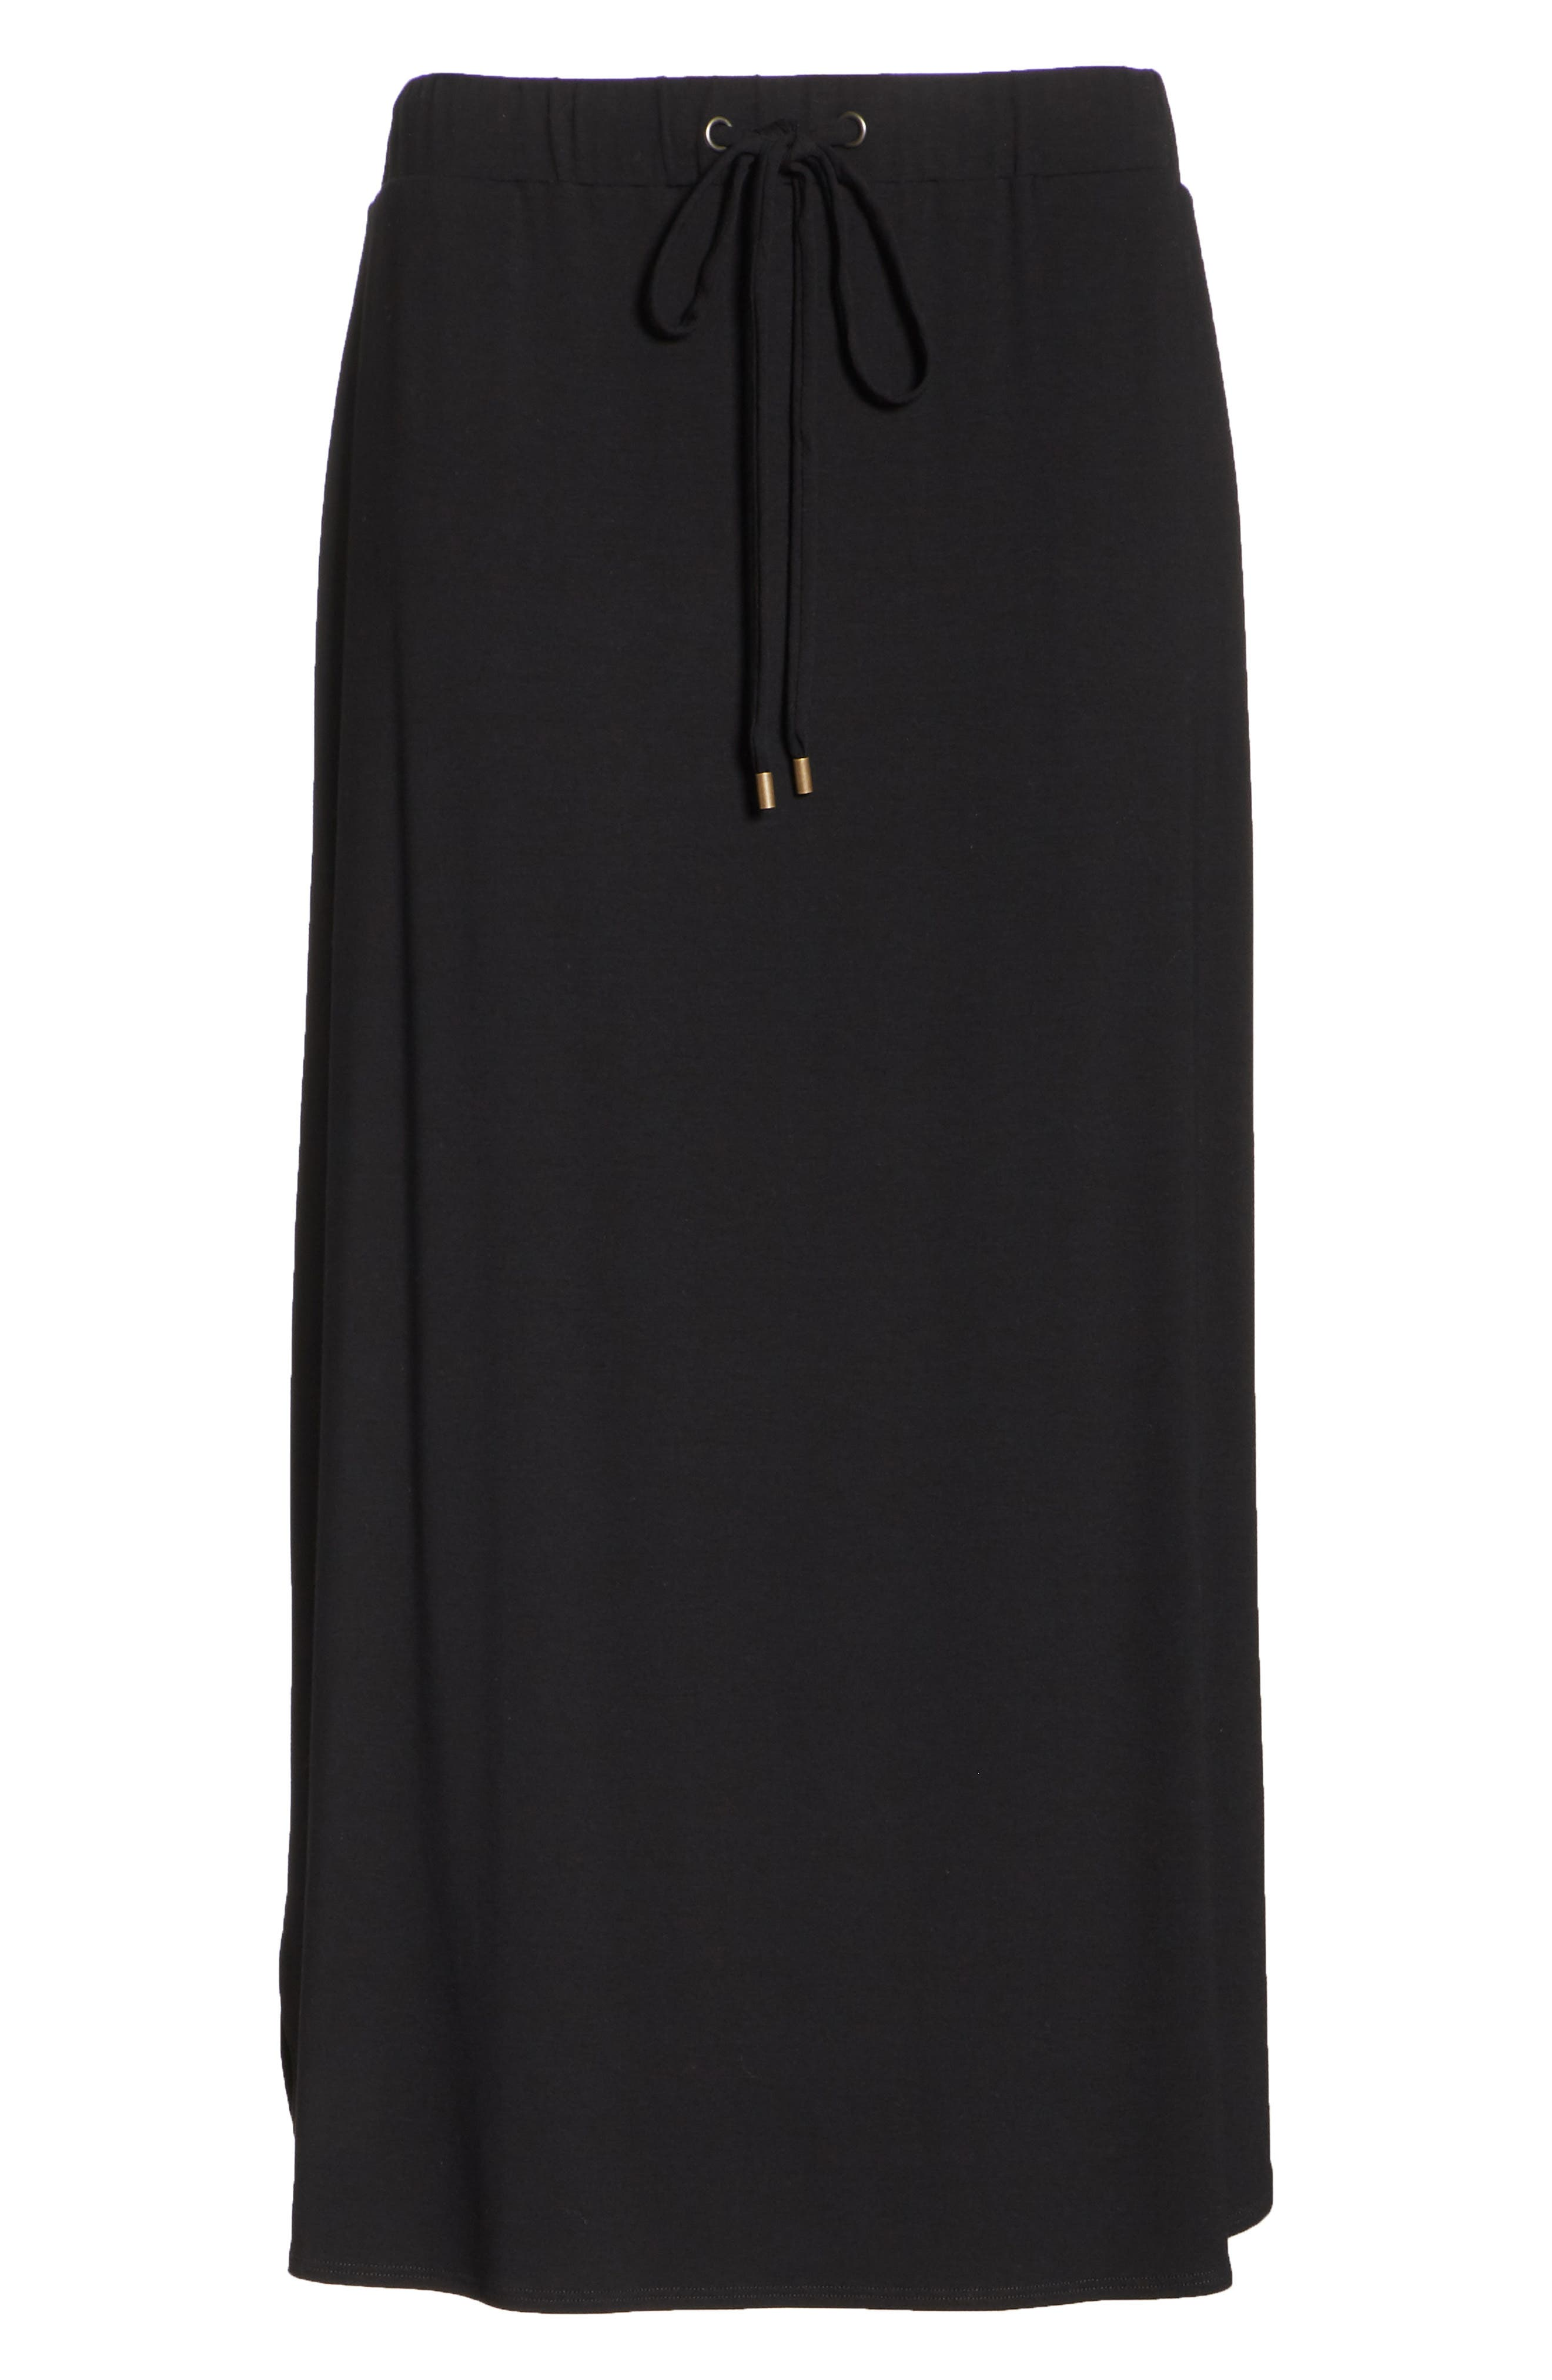 Drawstring Skirt,                             Alternate thumbnail 7, color,                             Black